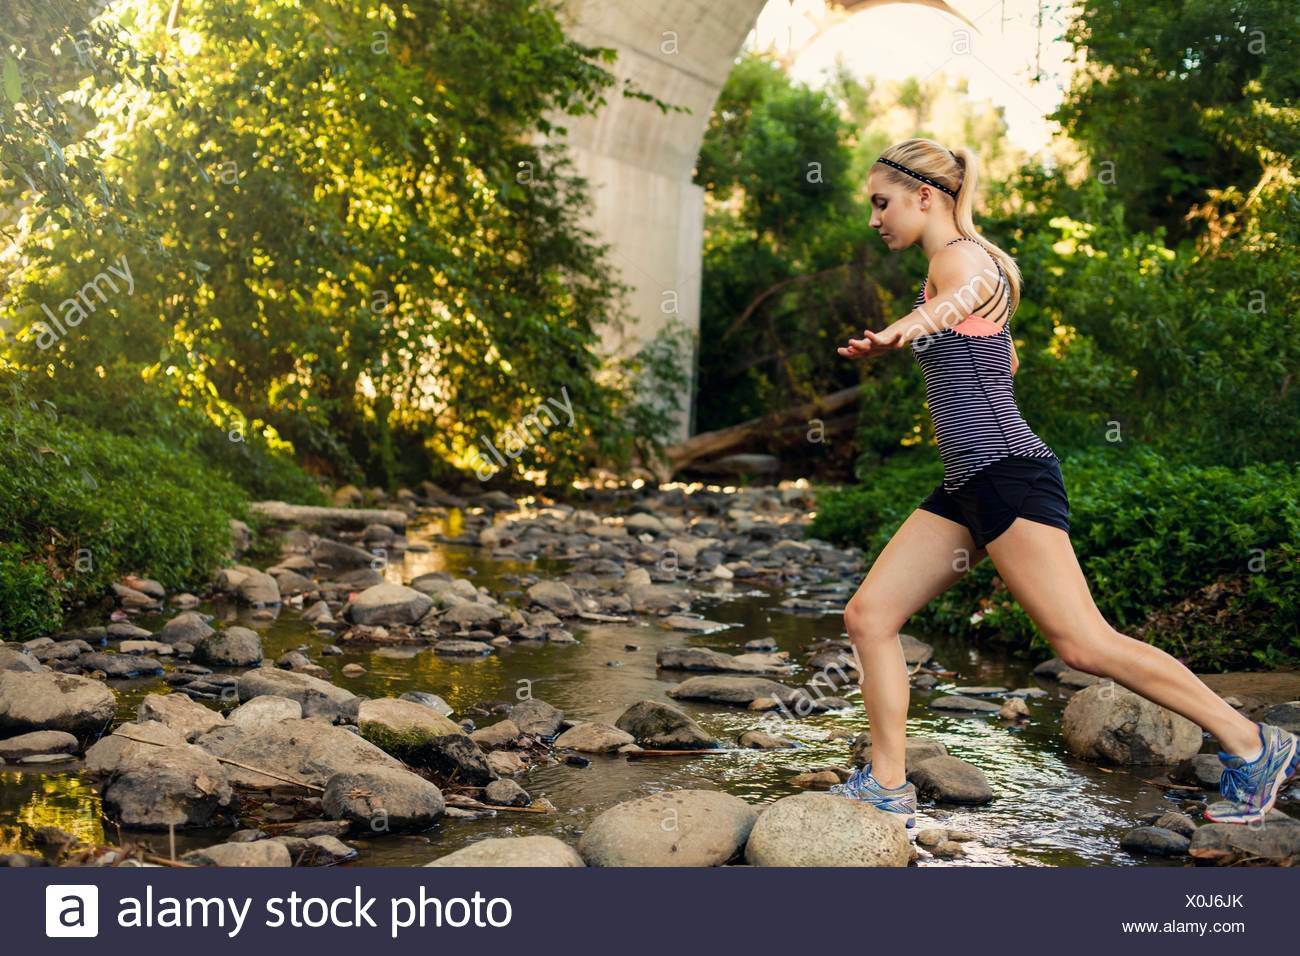 Jogger crossing stream under arch bridge, Arroyo Seco Park, Pasadena, California, USA - Stock Image